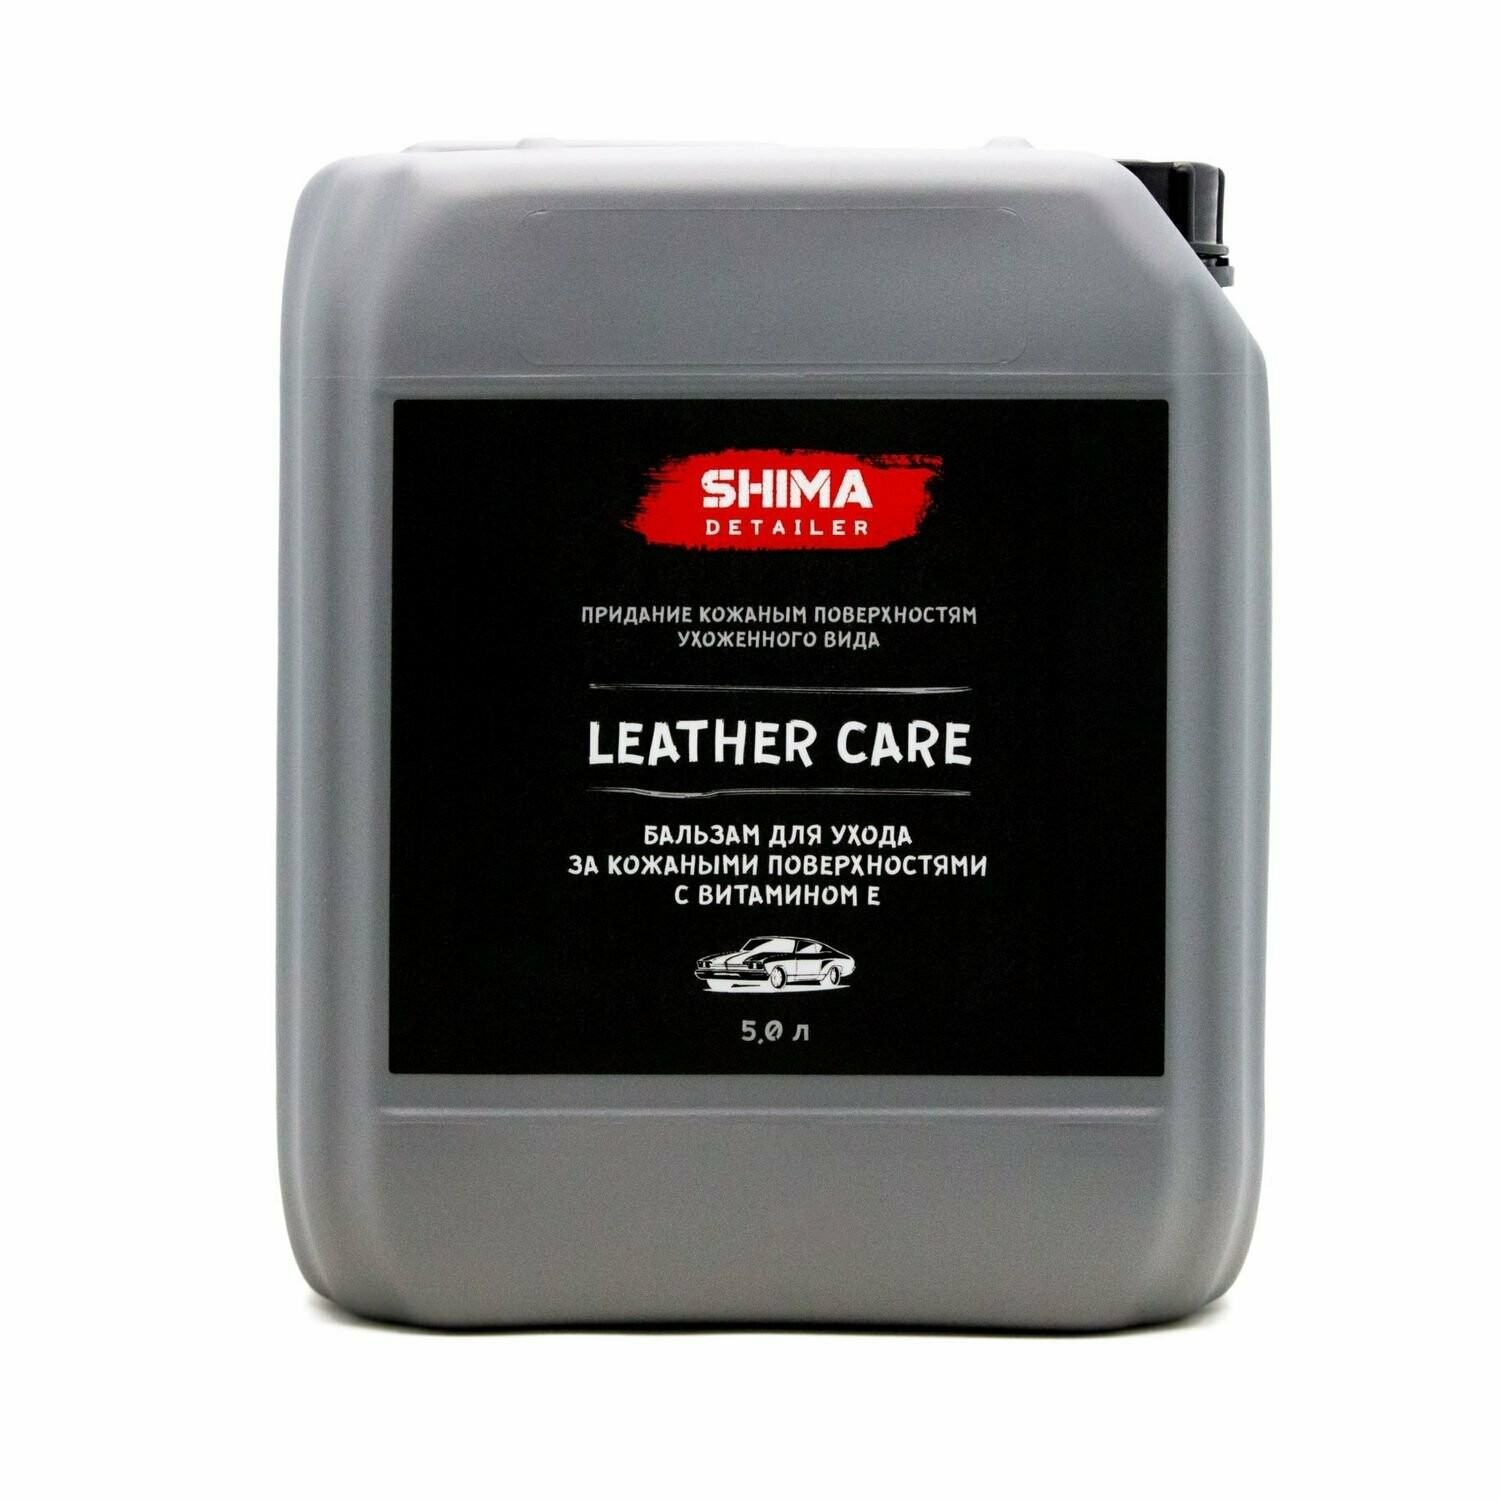 Кондиционер для кожи SHIMA DETAILER LEATHER CARE (5л) с витамином Е